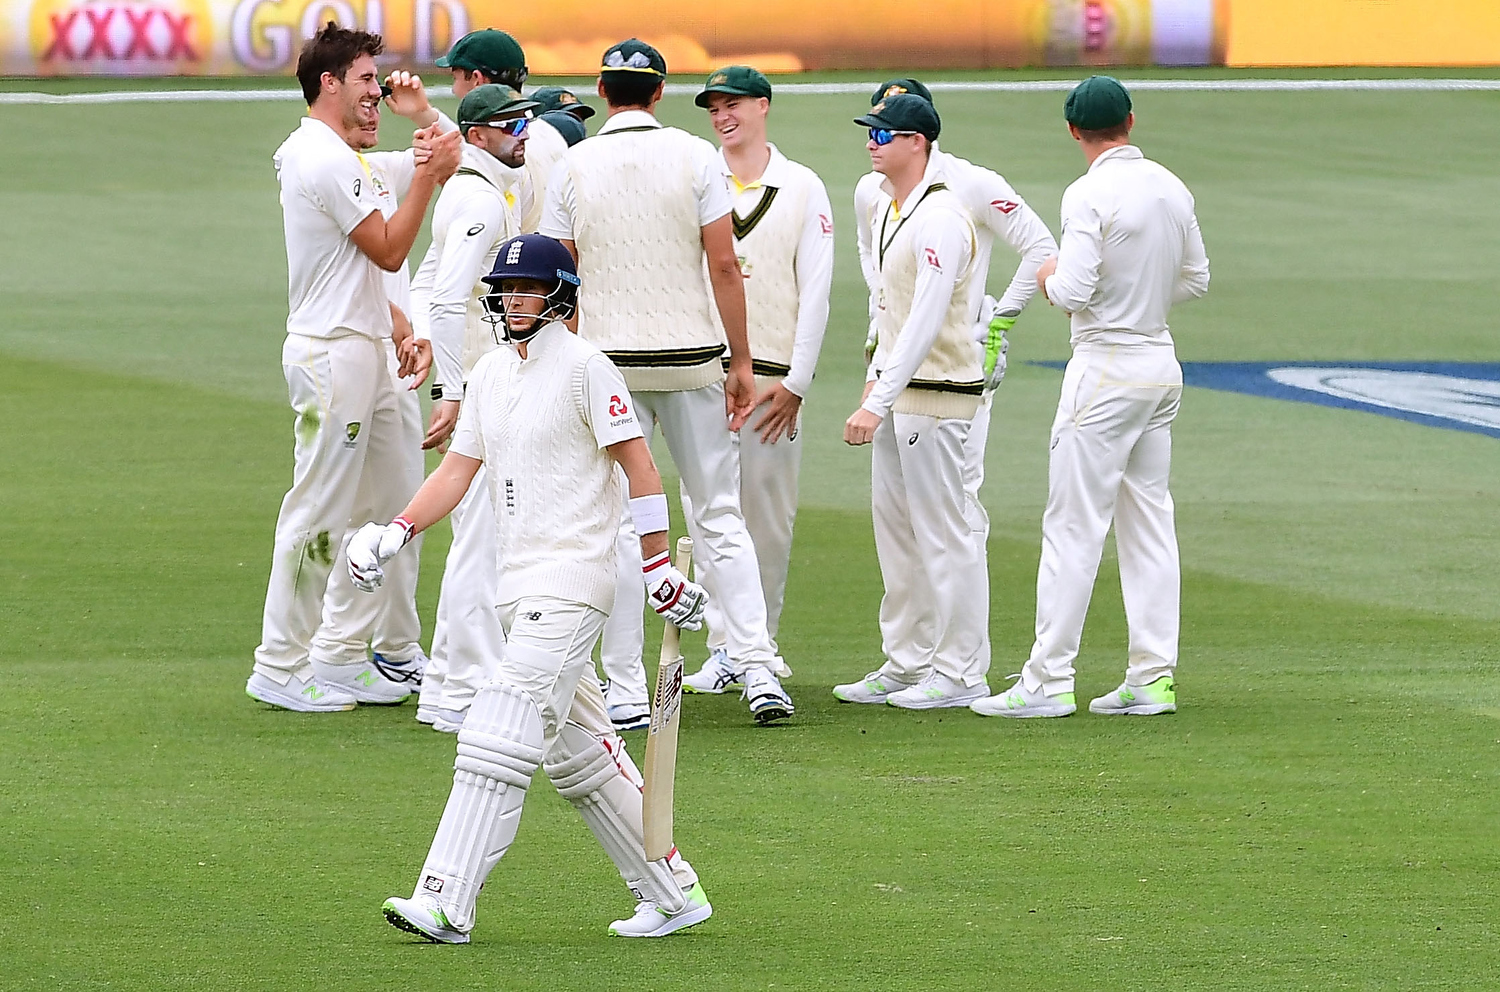 Ashes: Clinical Australia make it 2-0